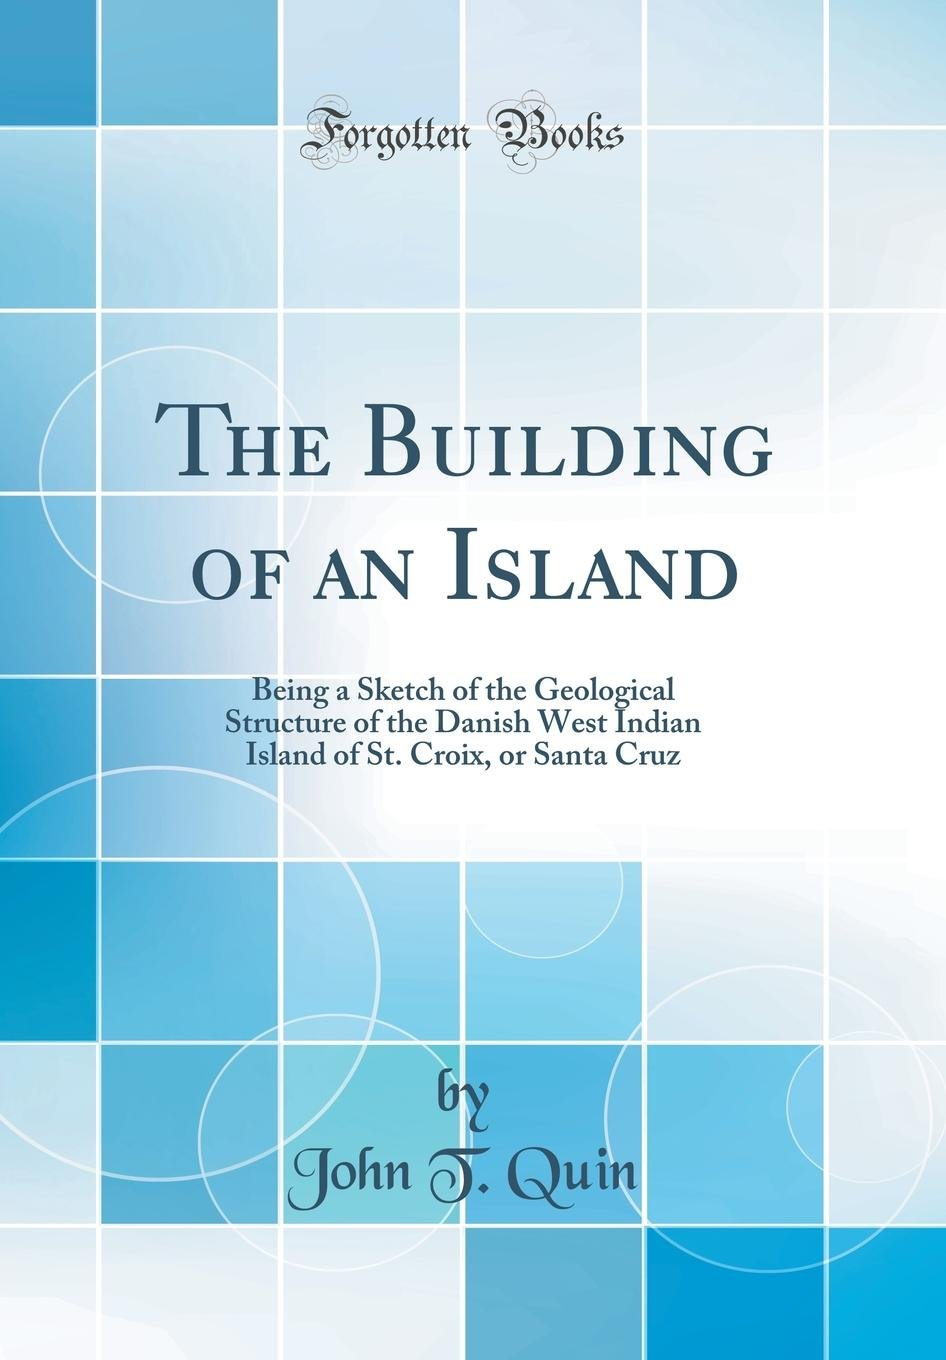 The Building of an Island: Being a Sketch of the Geological Structure of the Danish West Indian Island of St. Croix, or Santa Cruz (Classic Reprint) PDF